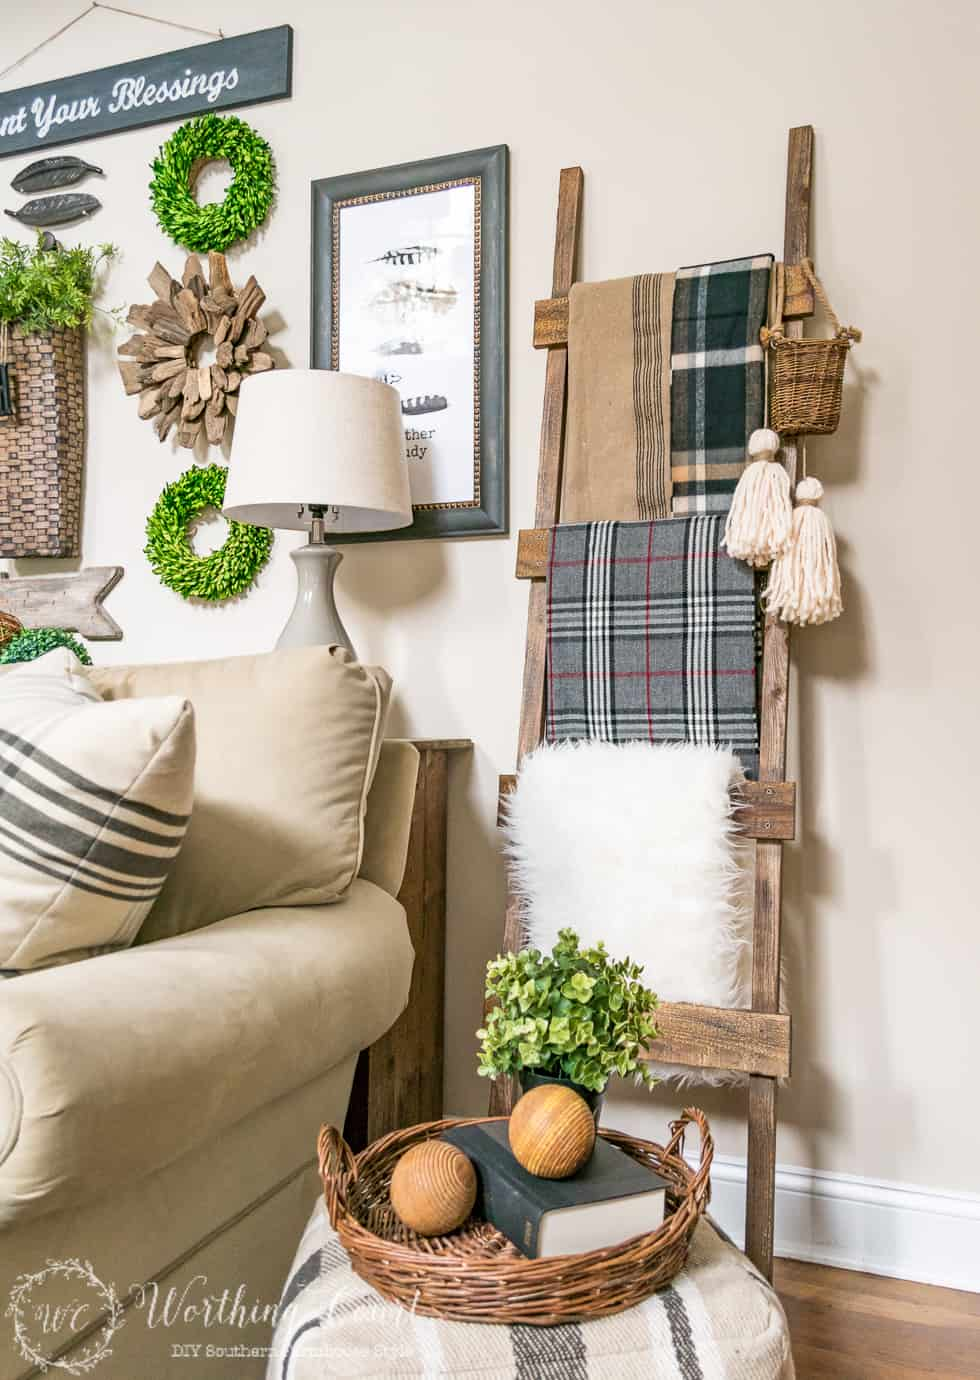 How To Build A Rustic Ladder For Under $20    Worthing Court